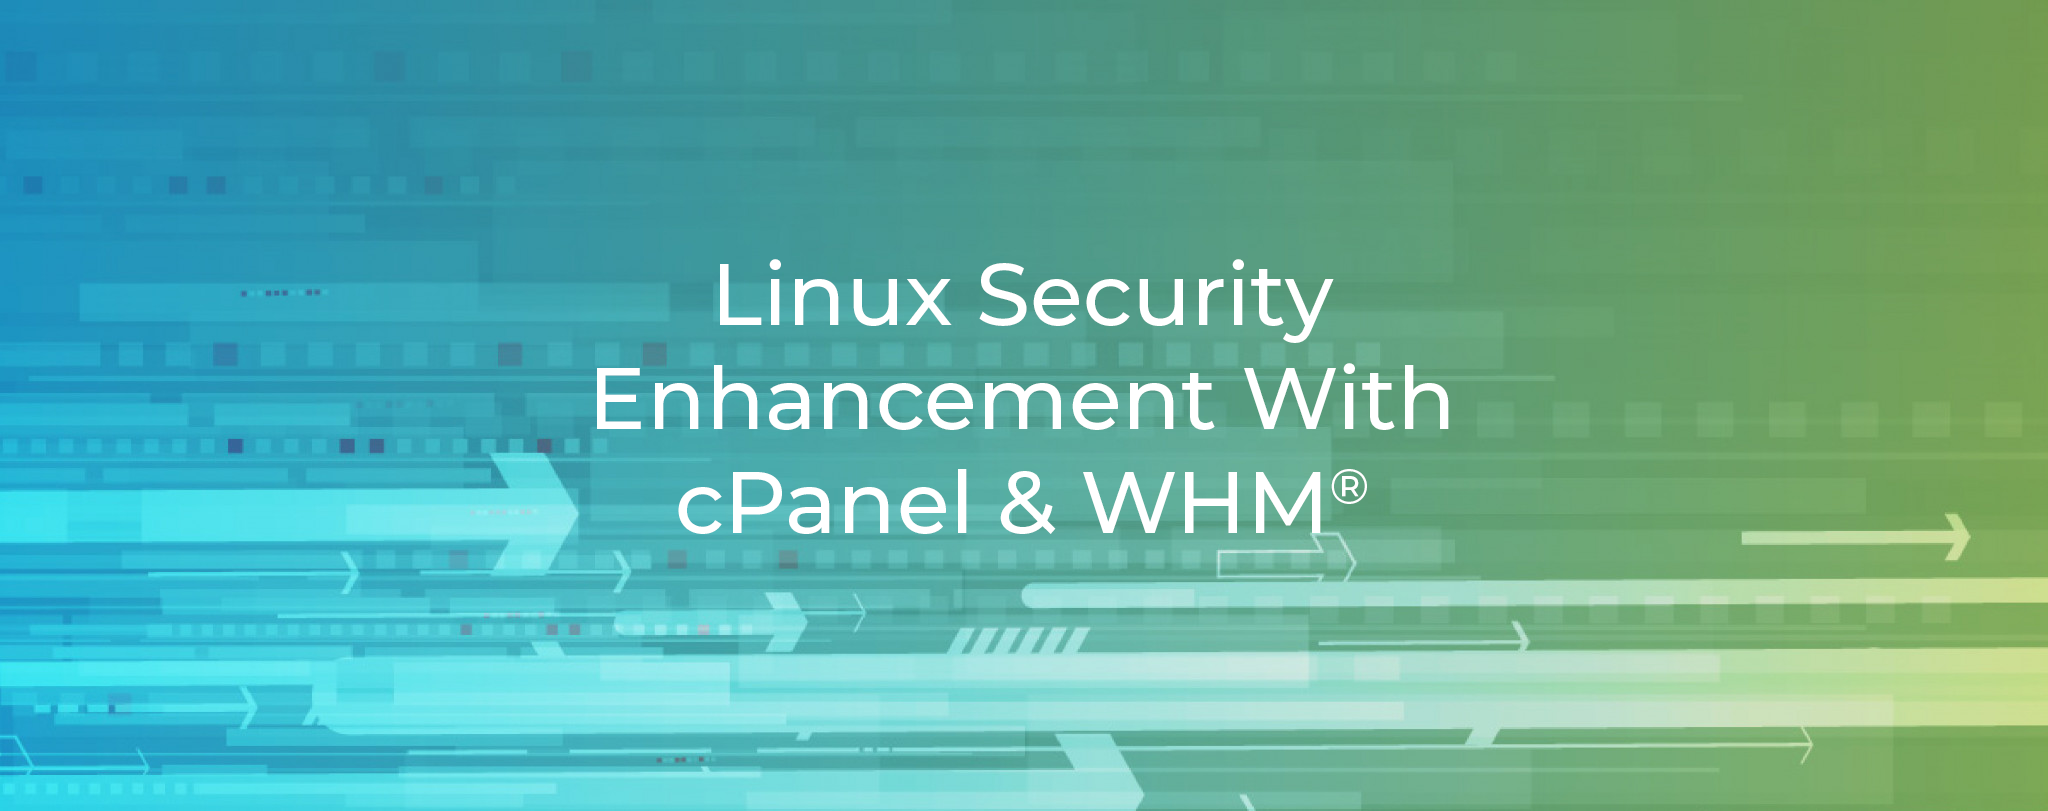 Linux Security Enhancement with cPanel and WHM